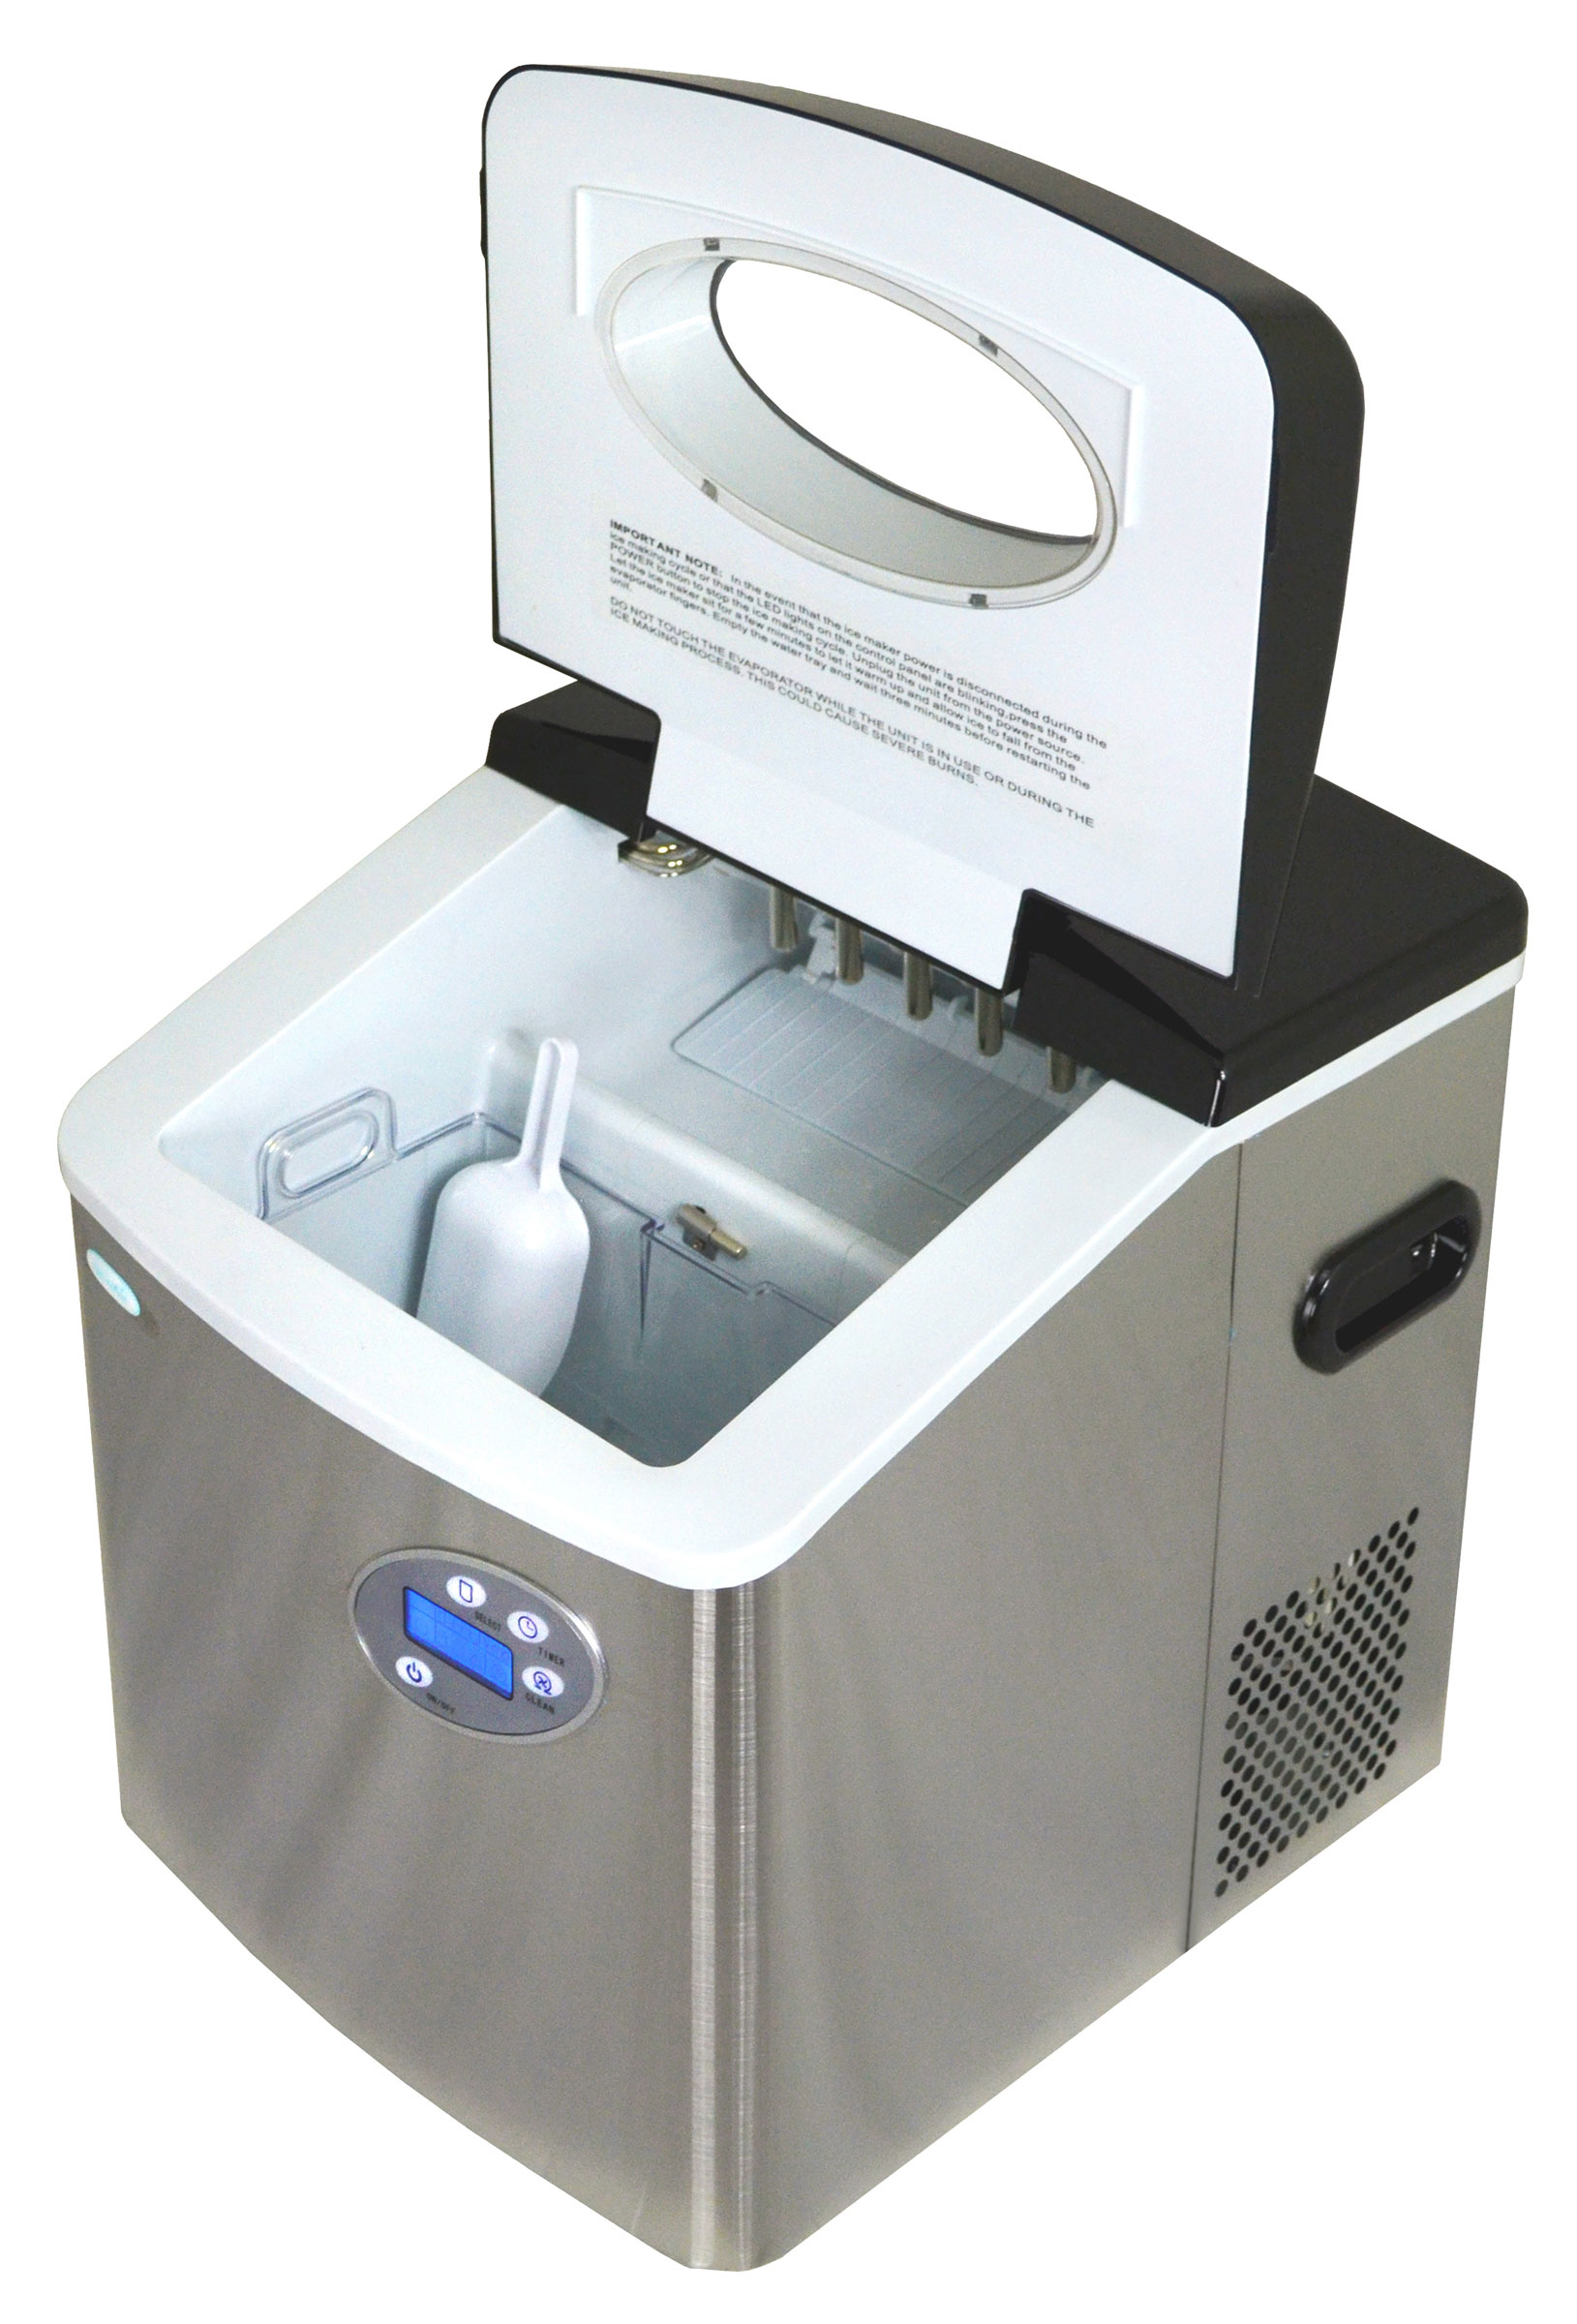 NEWAIR AI-215SS Stainless Steel Ice Maker 50 lbs per day